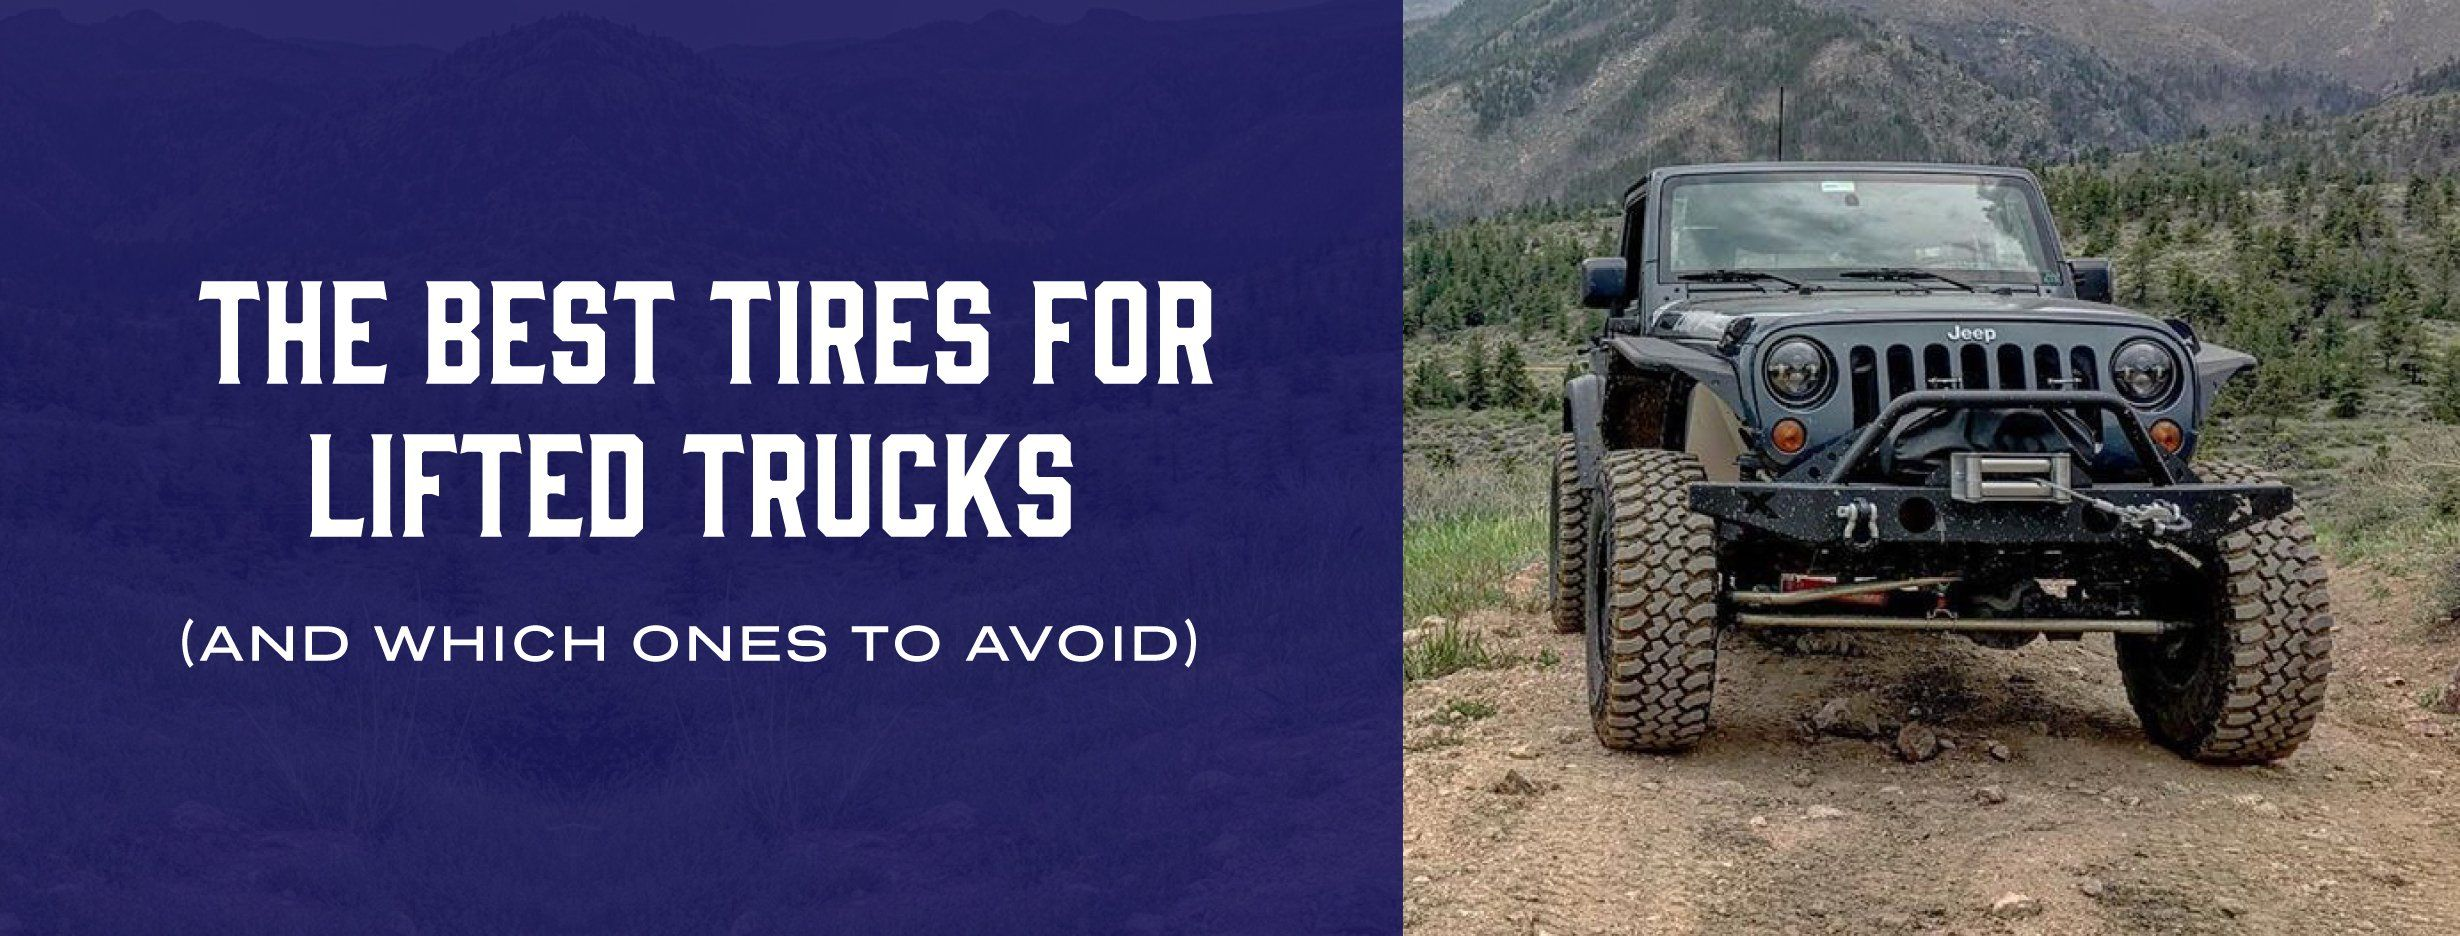 The Best Tires For Lifted Trucks (And Which Ones To Avoid)